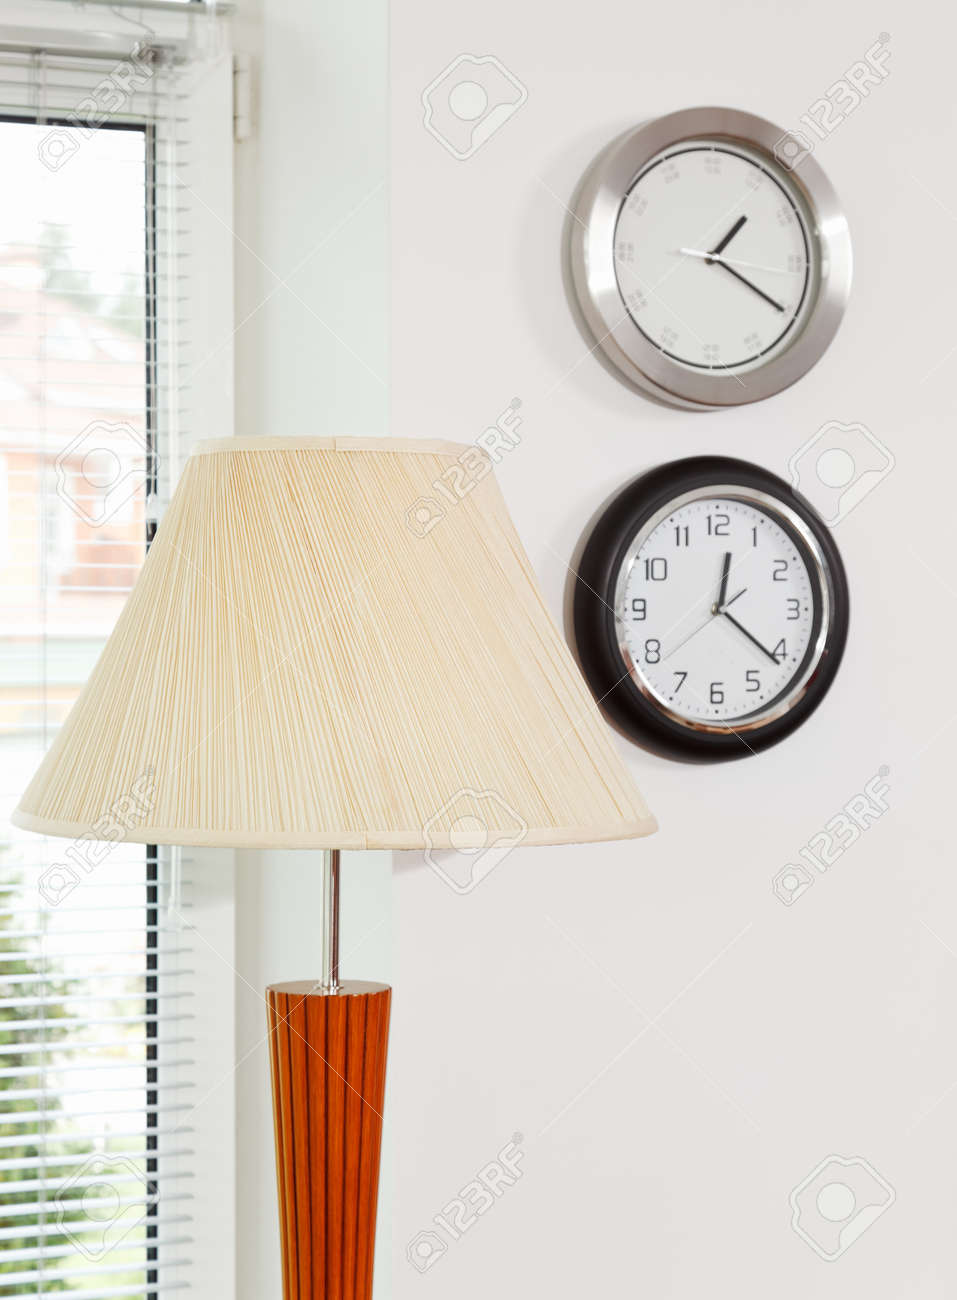 Part of modern minimalism style interior with lamp shade and clocks Stock Photo - 8547279